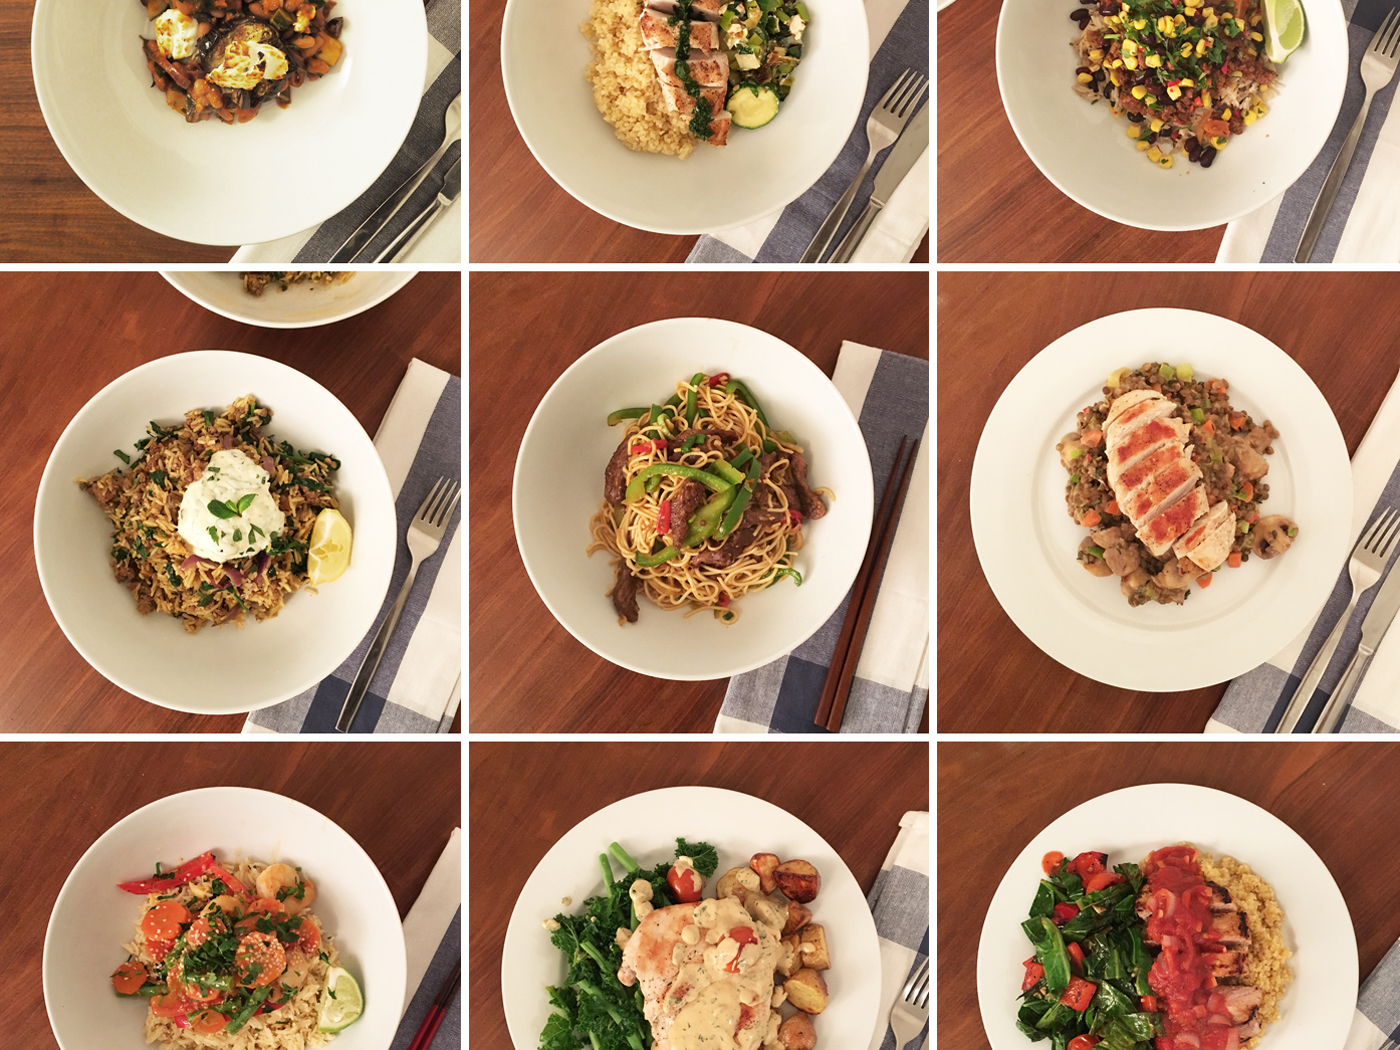 Hellofresh  Meal Kit Delivery Service New Price